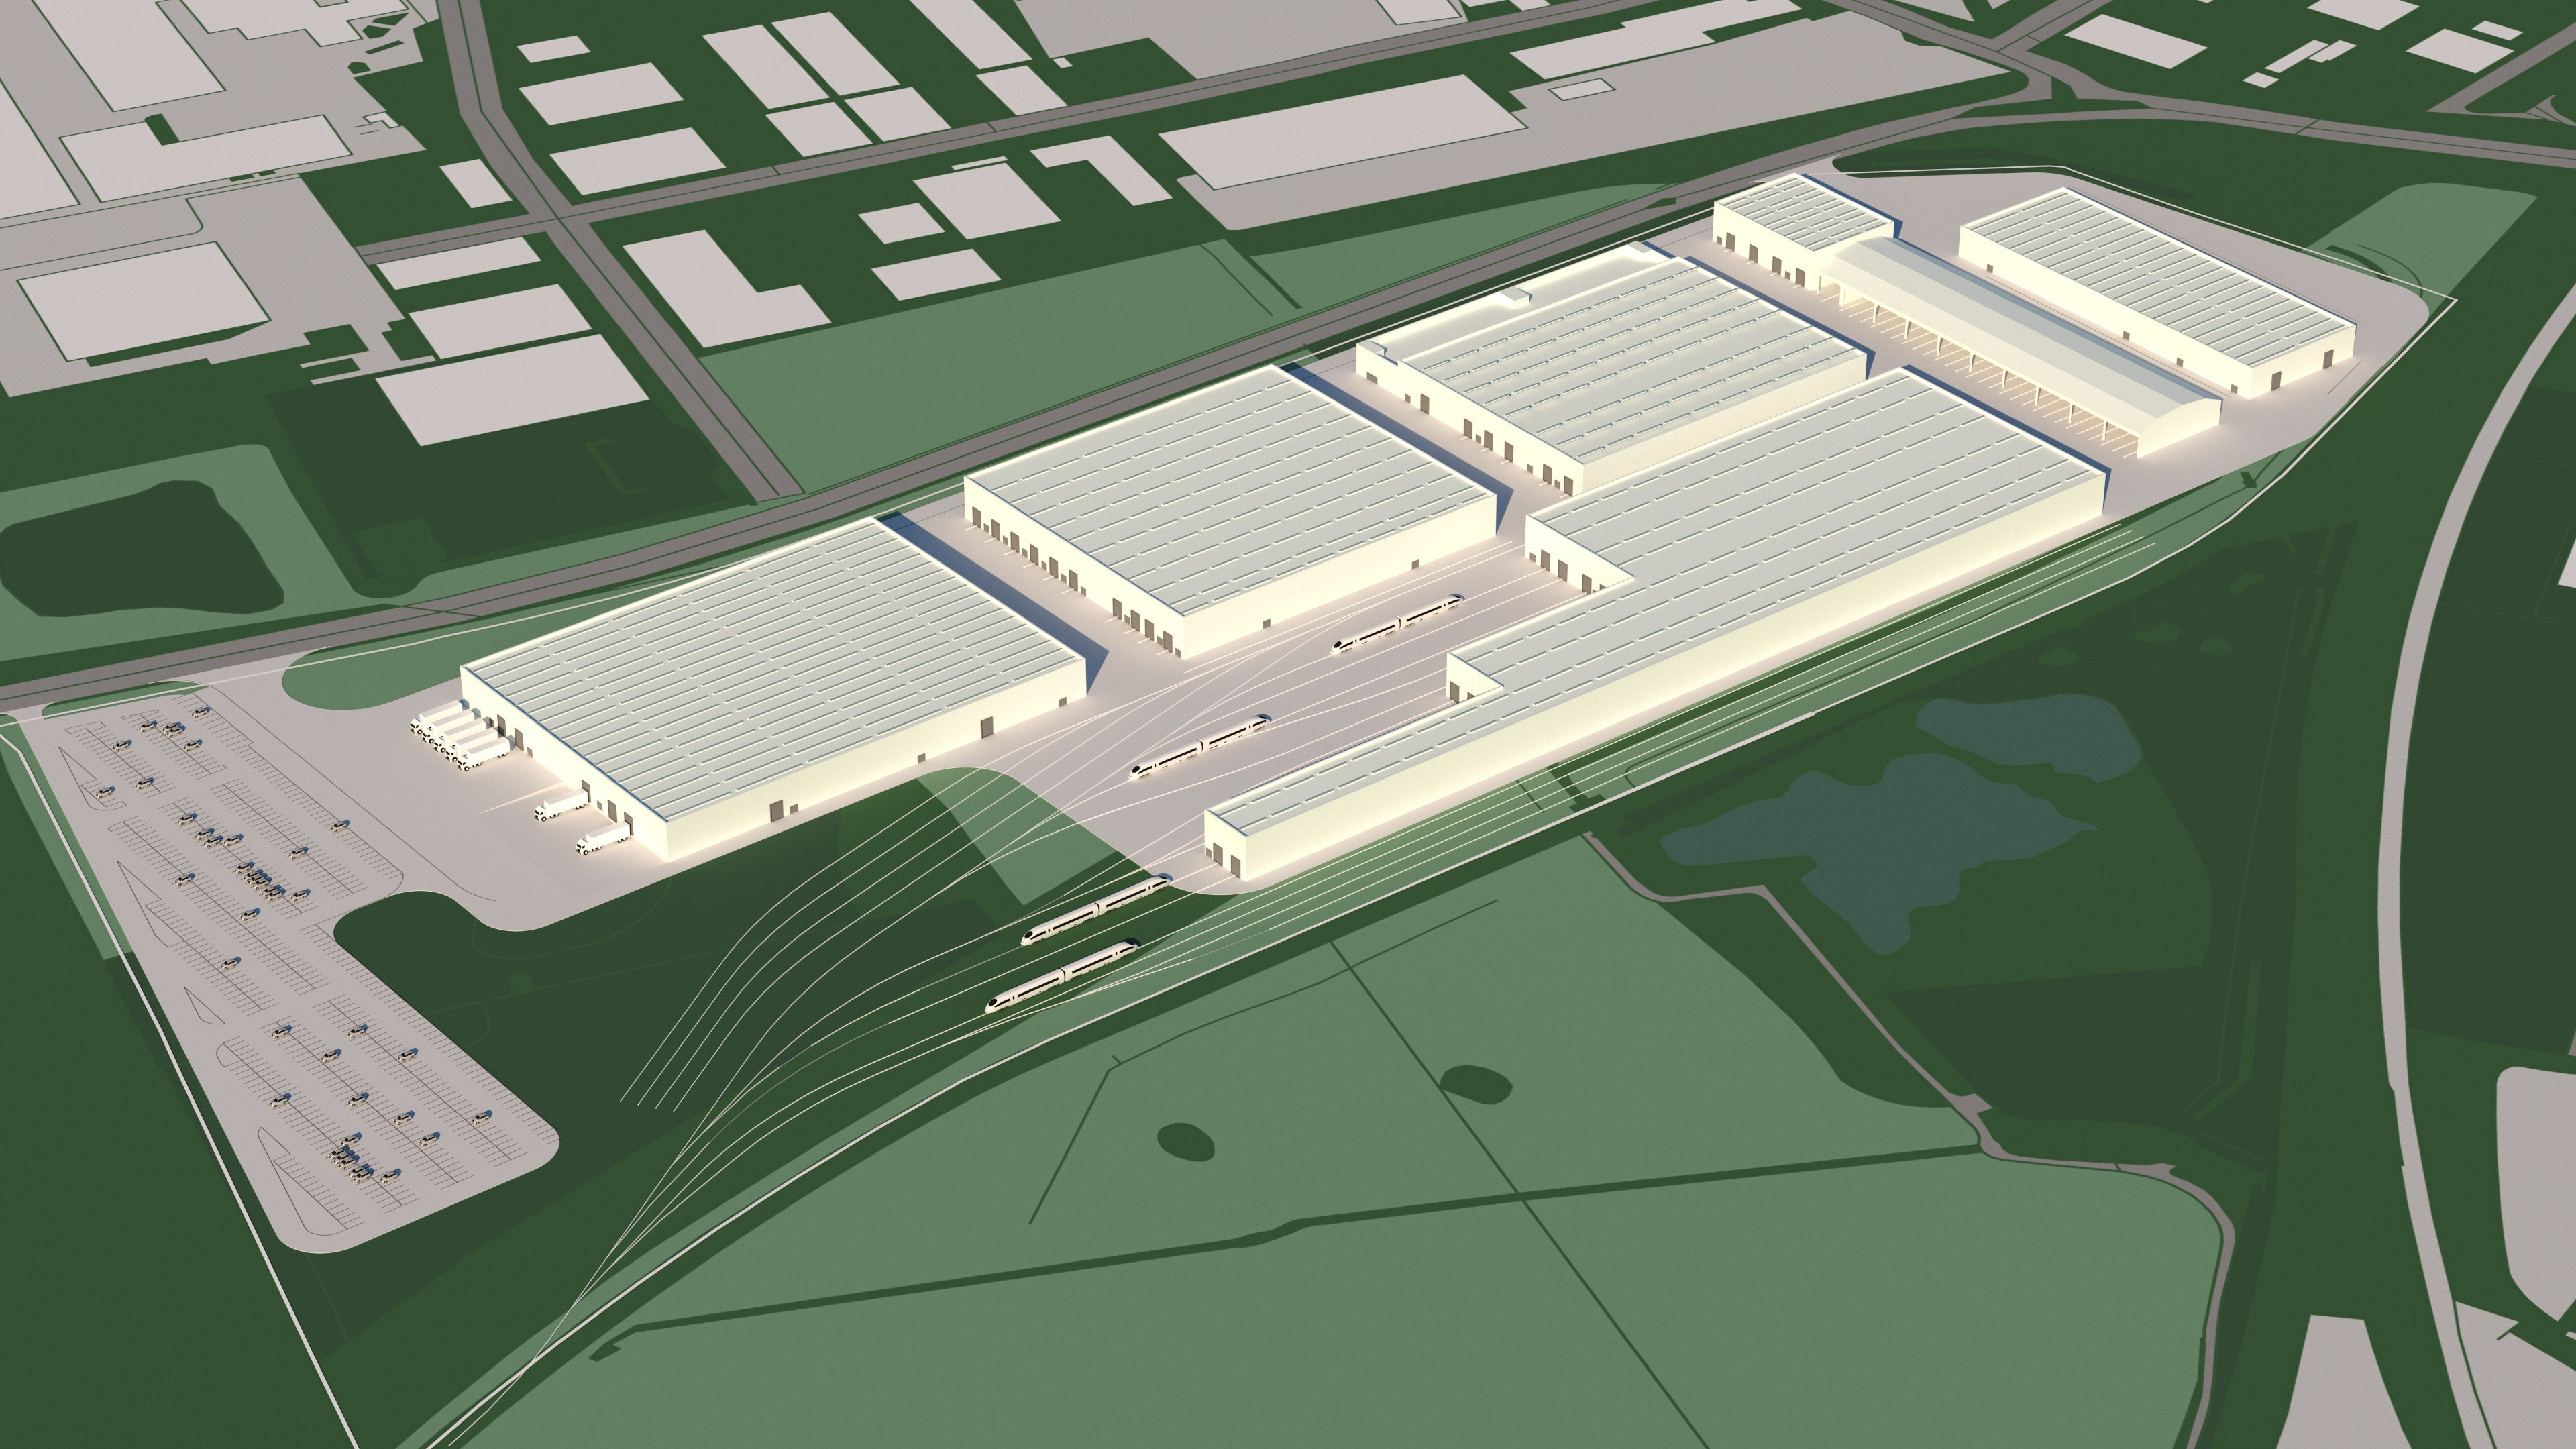 Siemens' new rail factory planned for Goole, UK